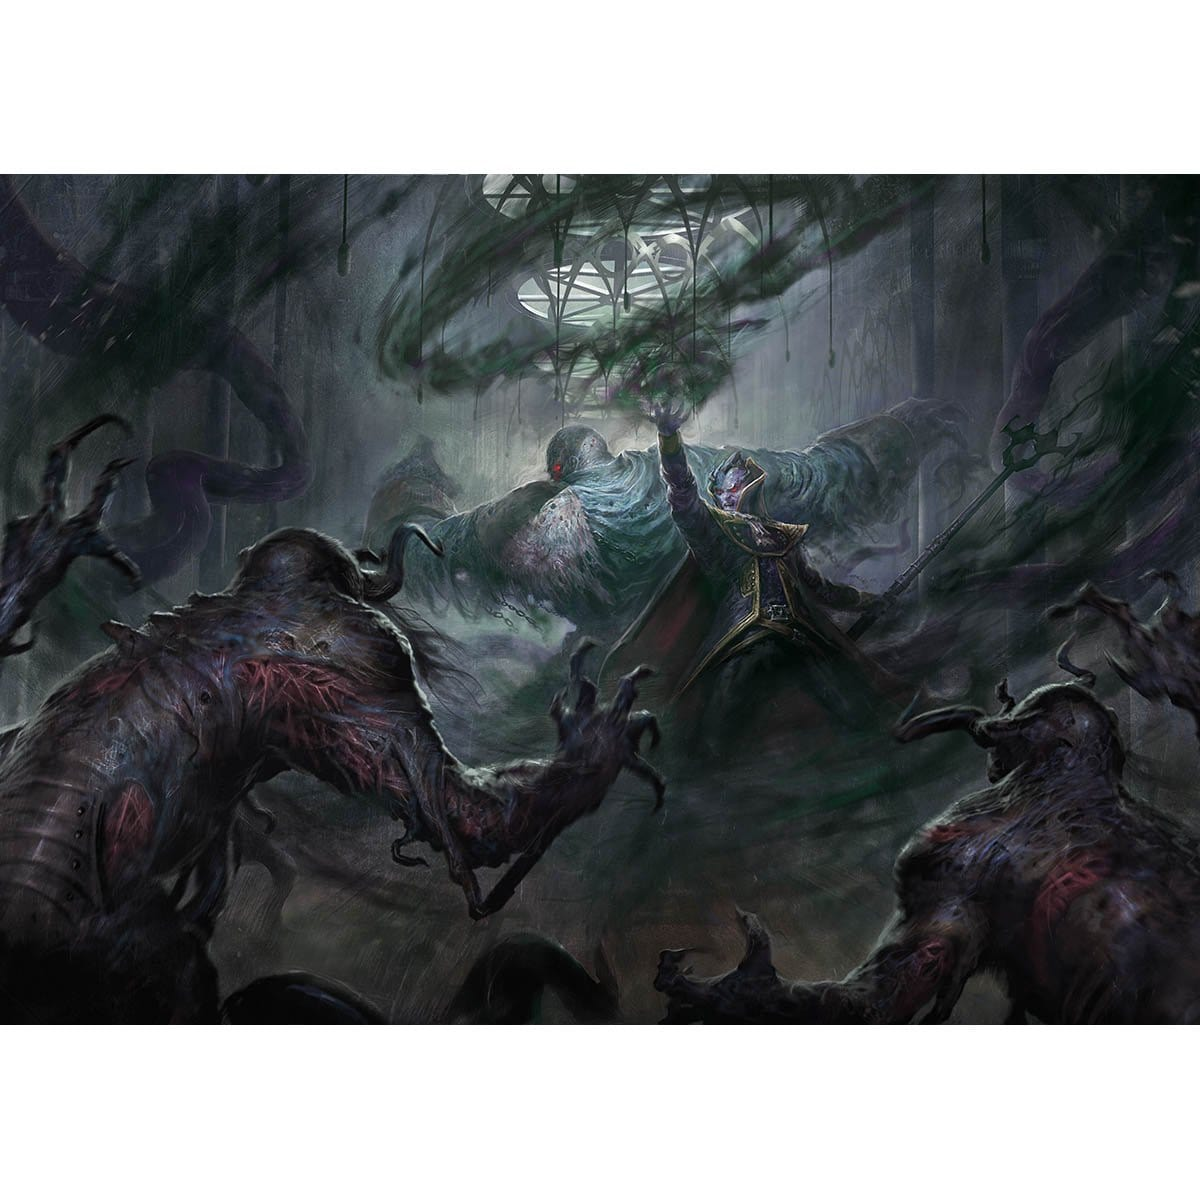 Collective Brutality Print - Print - Original Magic Art - Accessories for Magic the Gathering and other card games